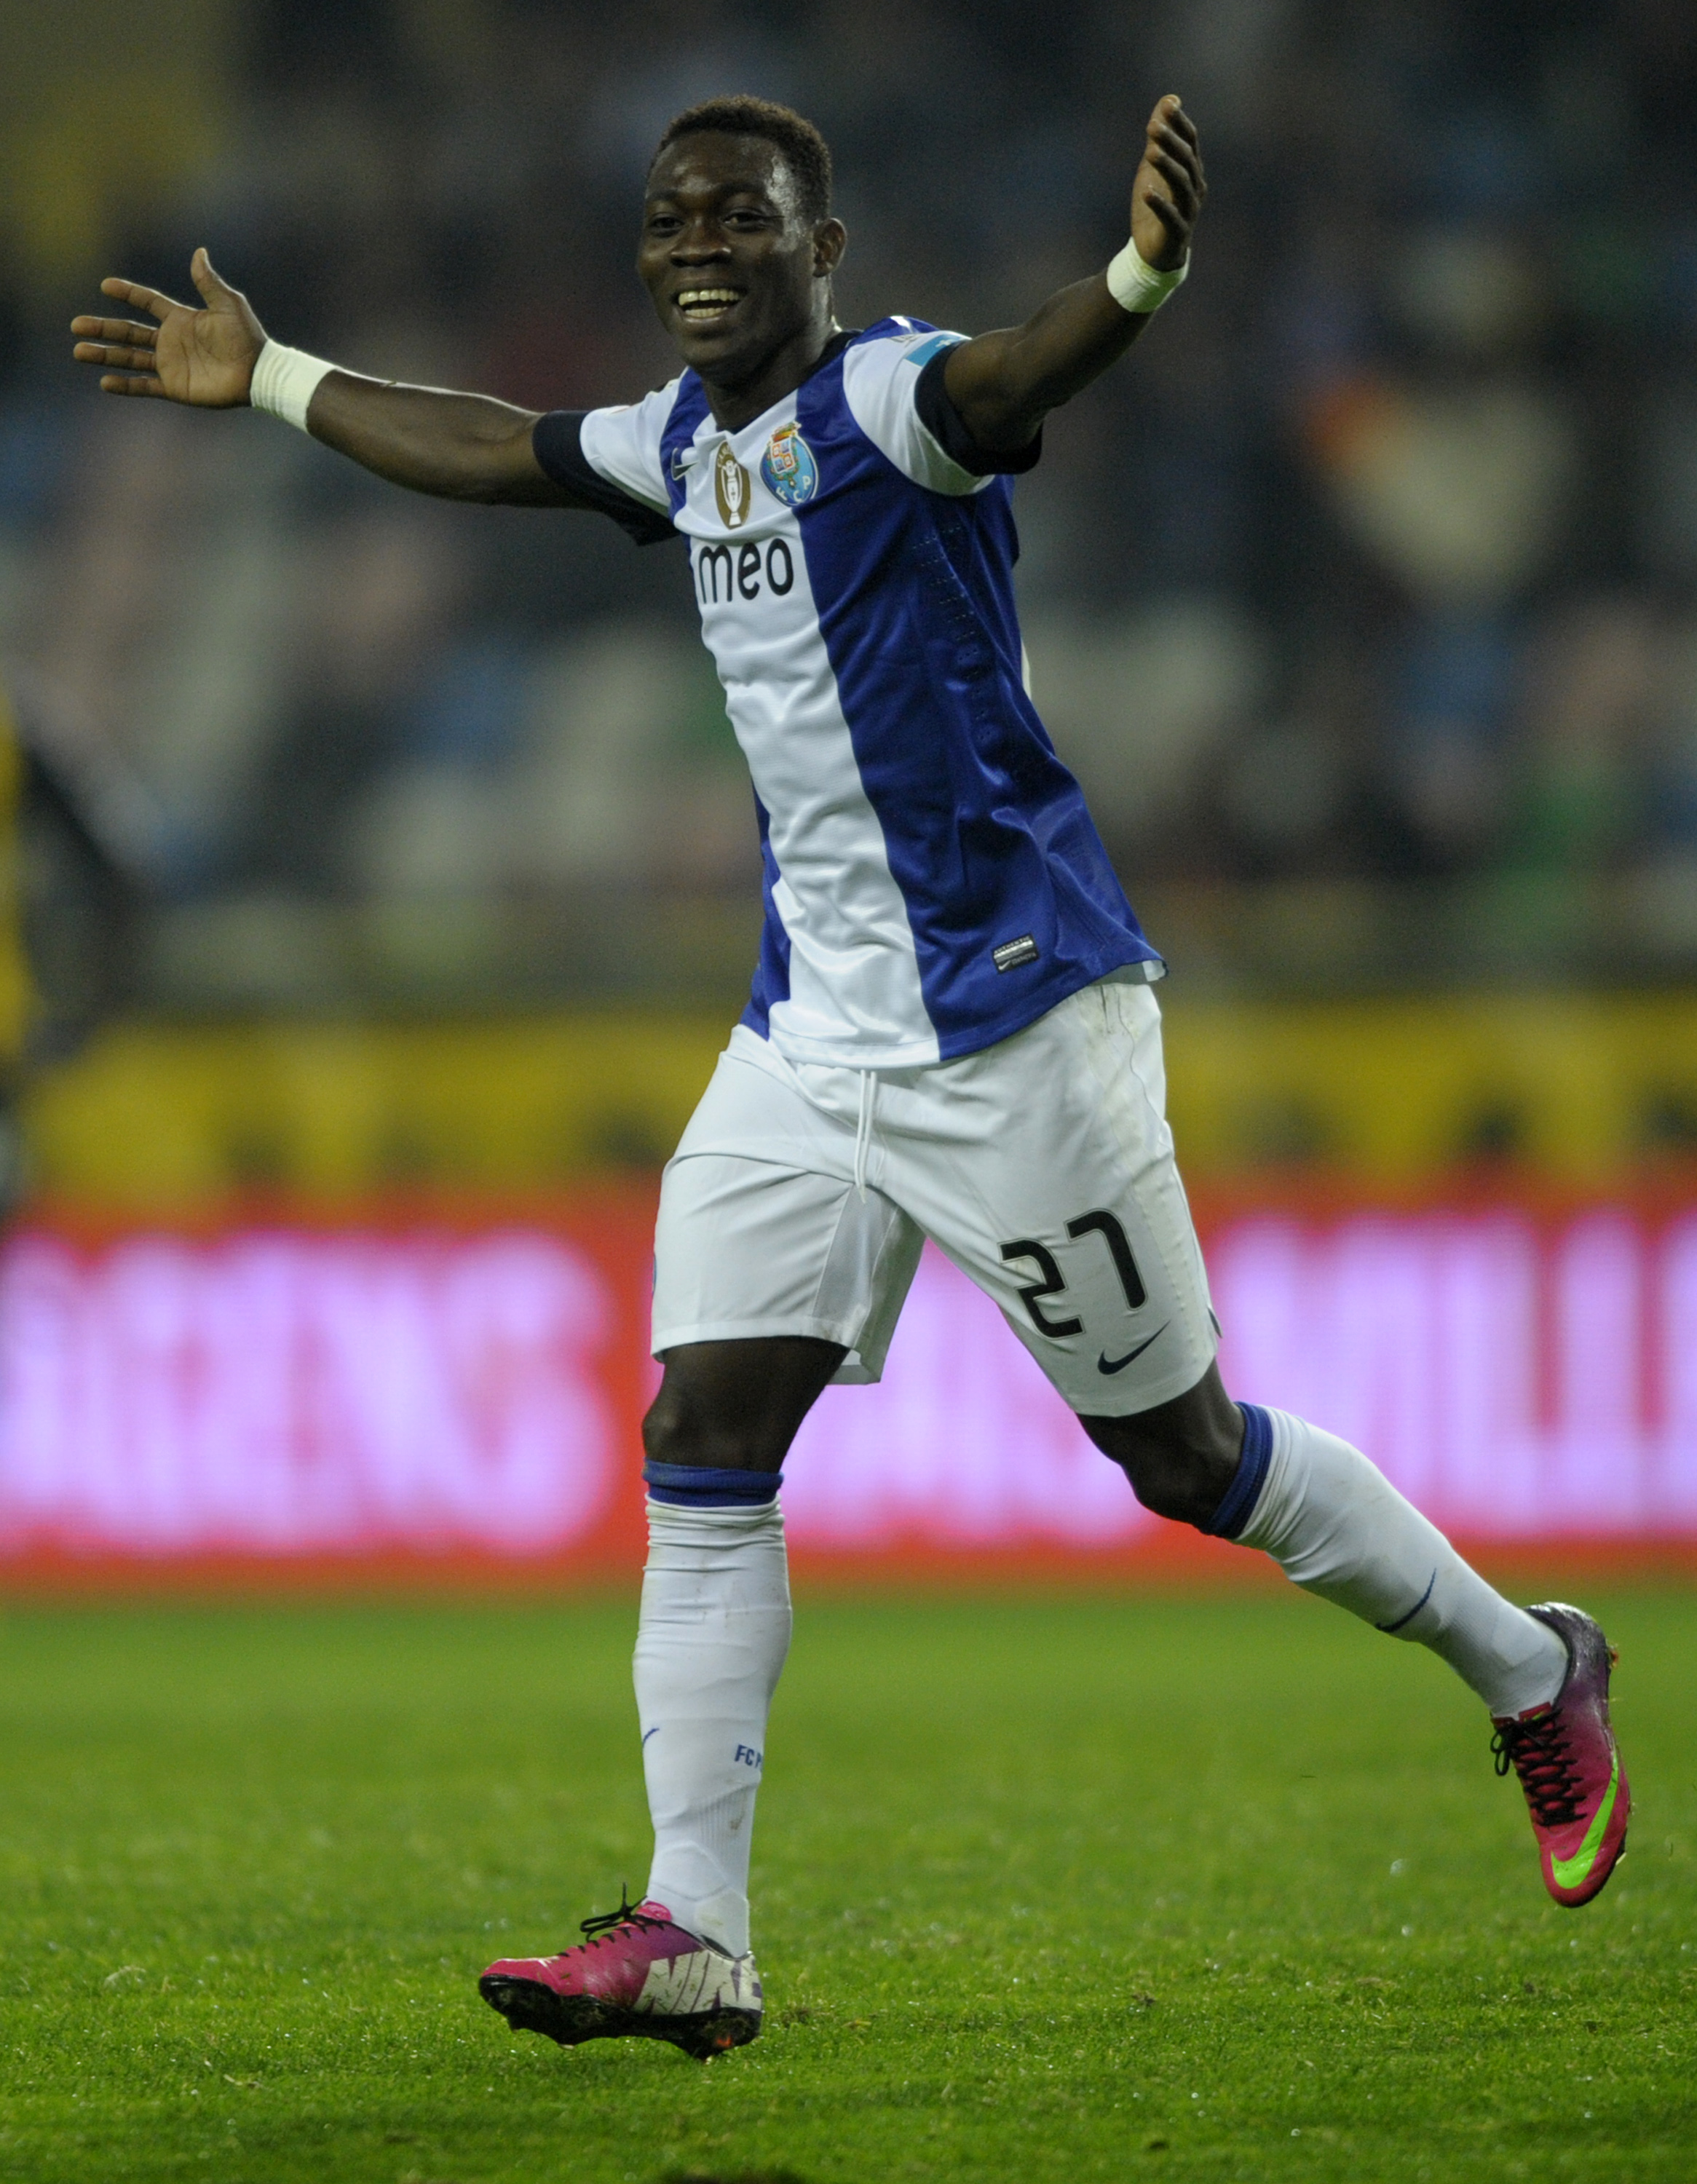 Christian Atsu set for Liverpool transfer after rejecting new Porto contract